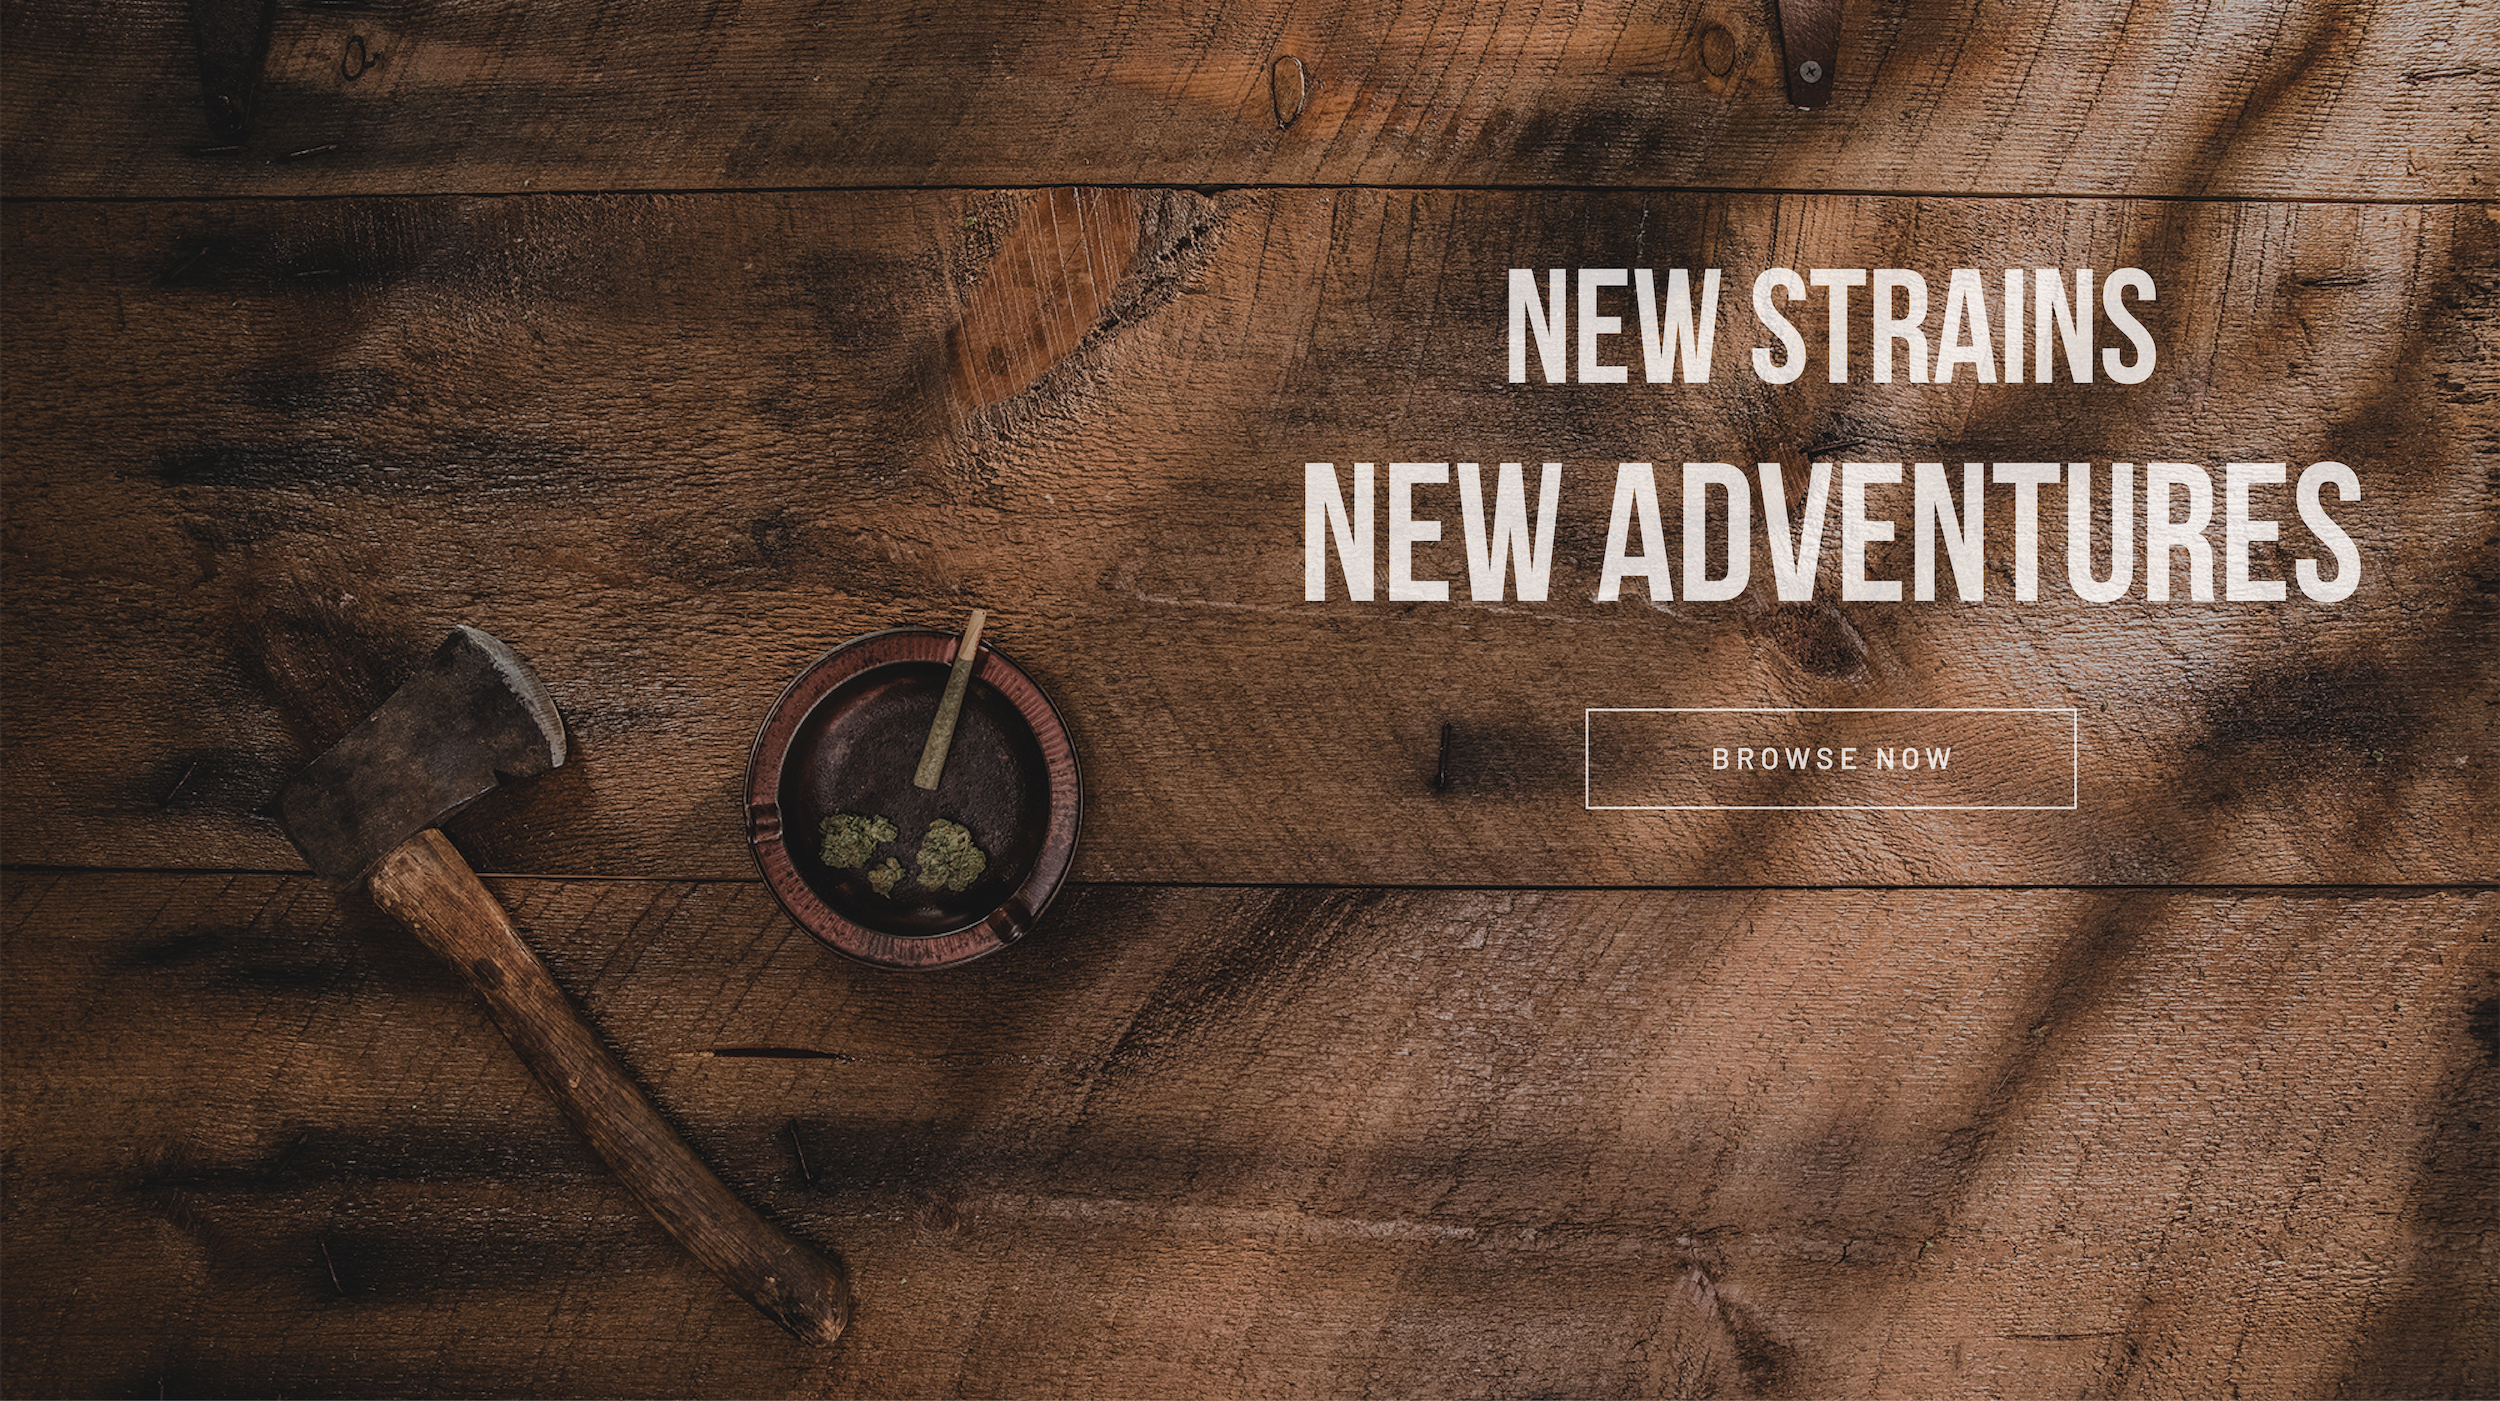 Axe HWF New Strains New Adventures for Home Slideshow small.jpg